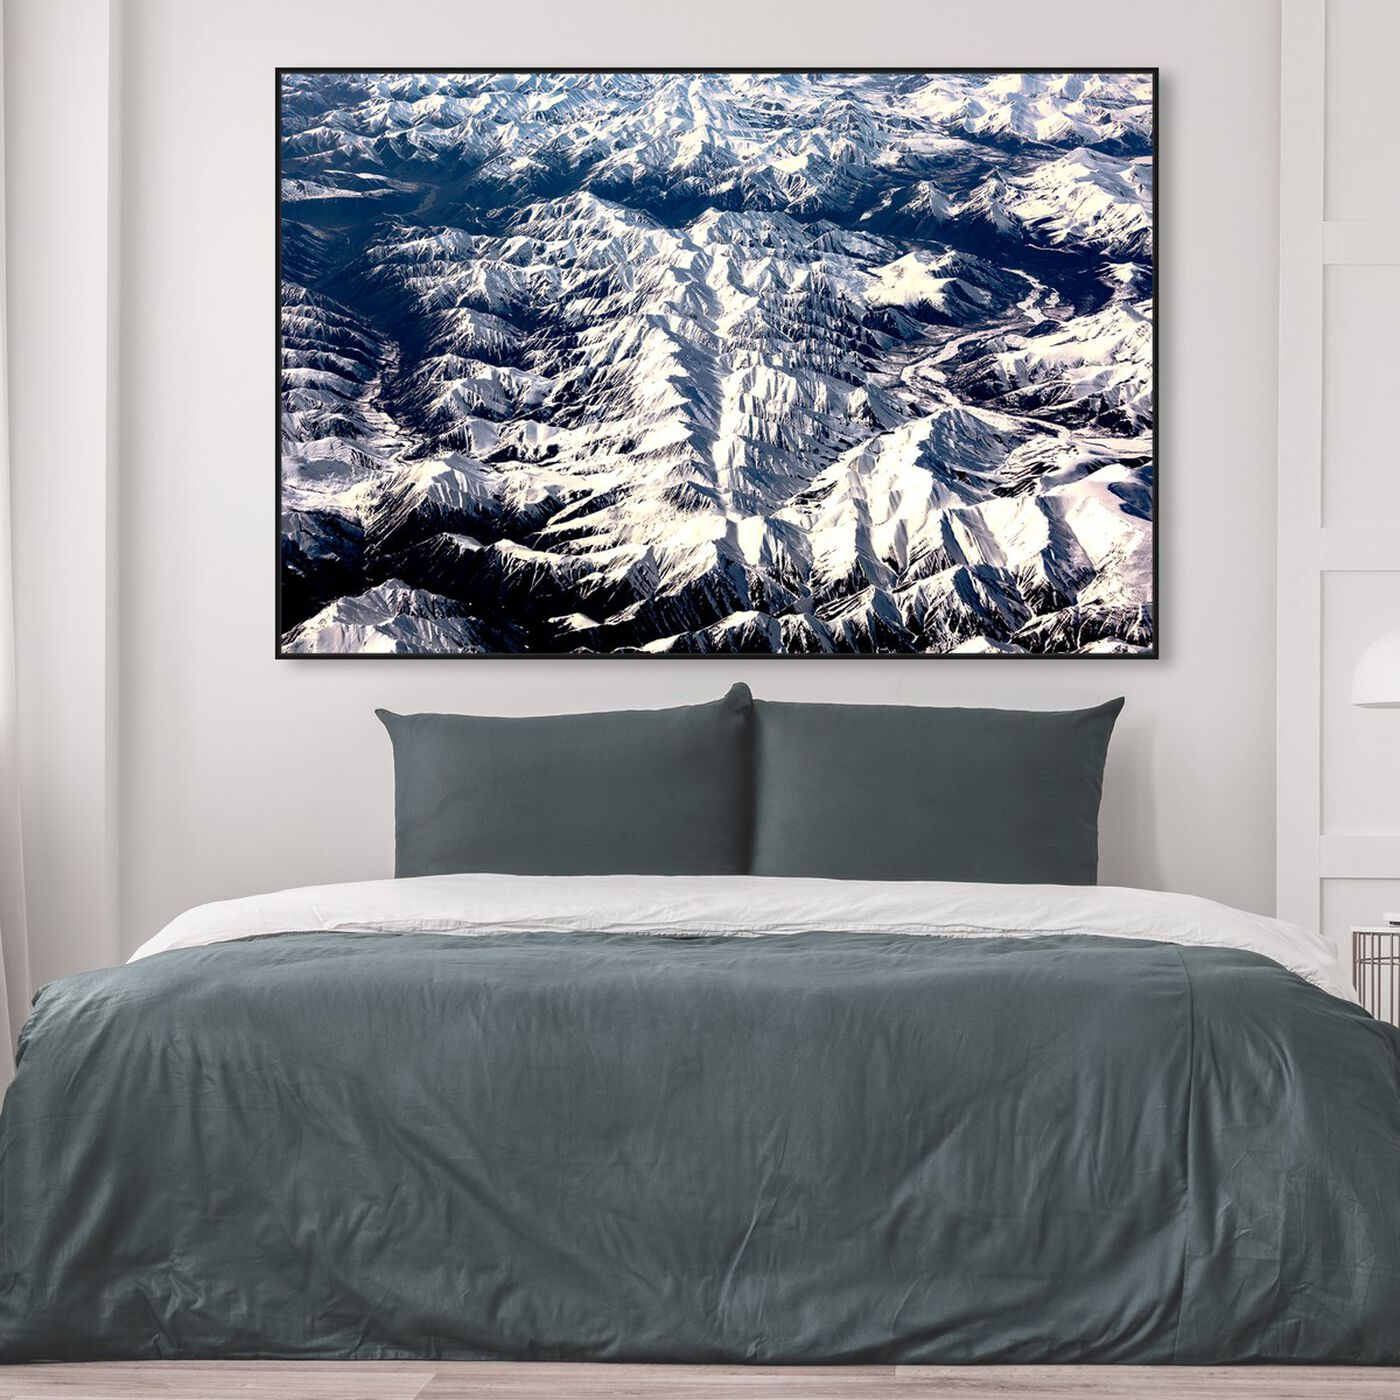 Hanging view of Curro Cardenal - Aero View III featuring nature and landscape and mountains art.